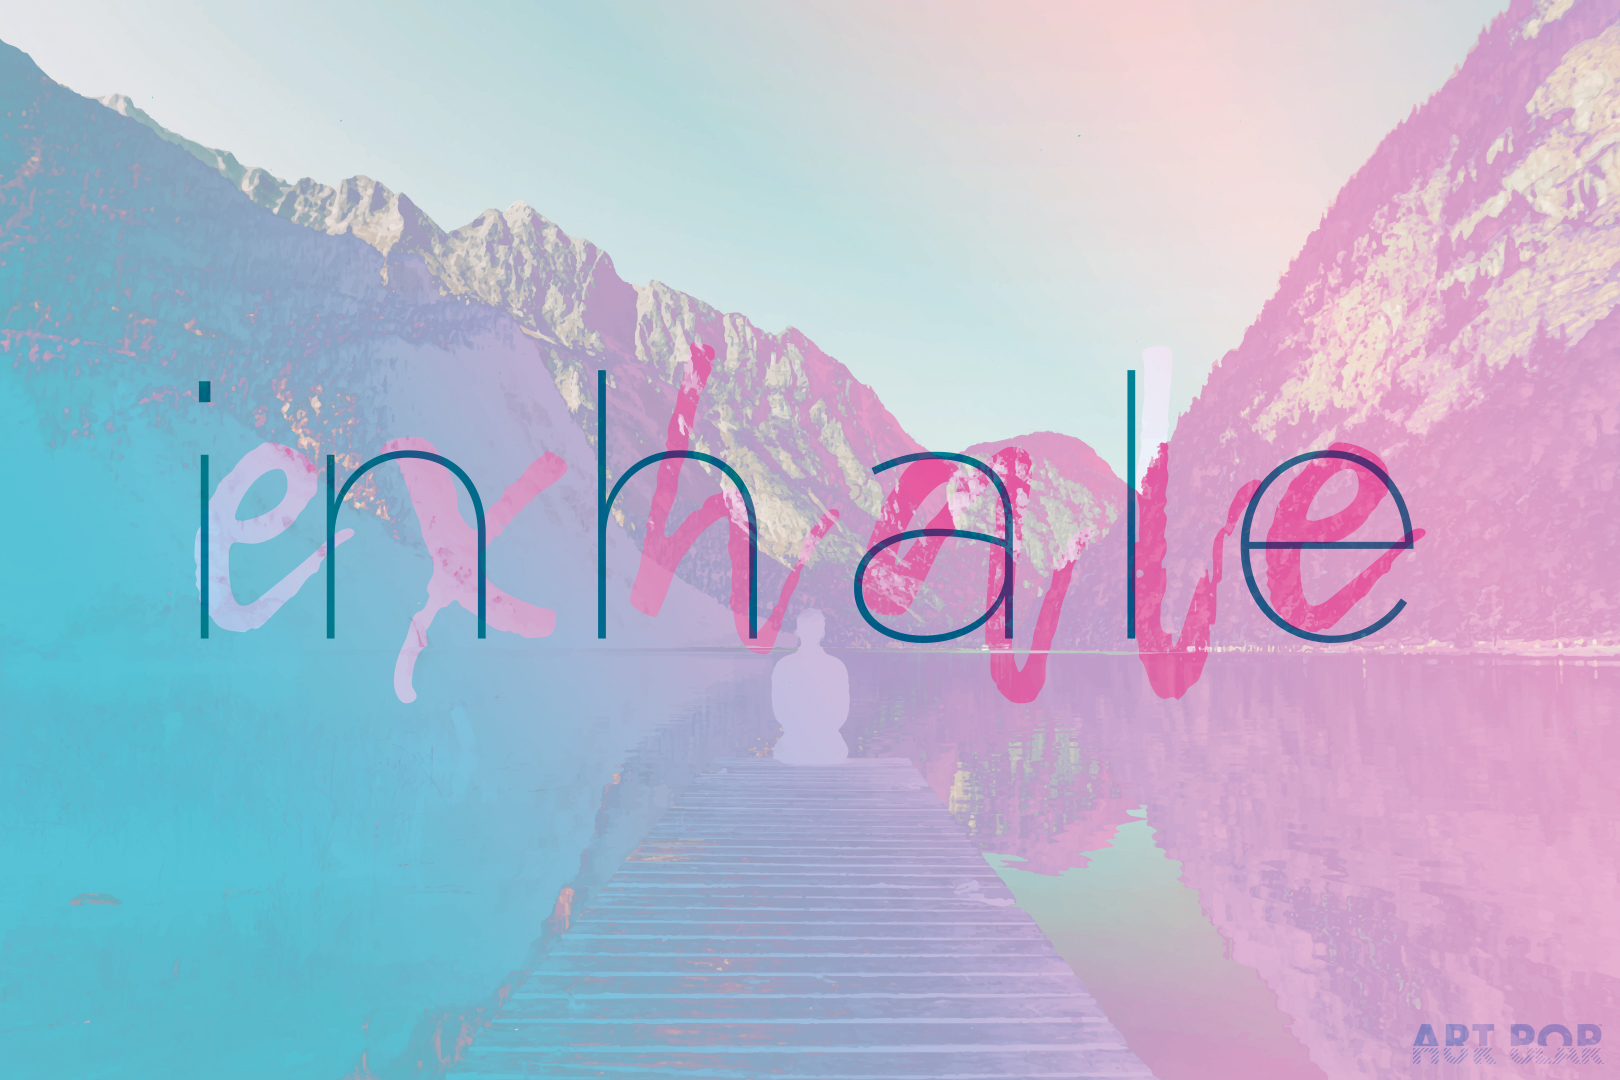 Inhale / Exhale - The final piece in a series of five, preceded by Learn / Listen, making up a motto of sorts that's been swimming in my head for many years. Available via: DeviantArt | Redbubble | Society6